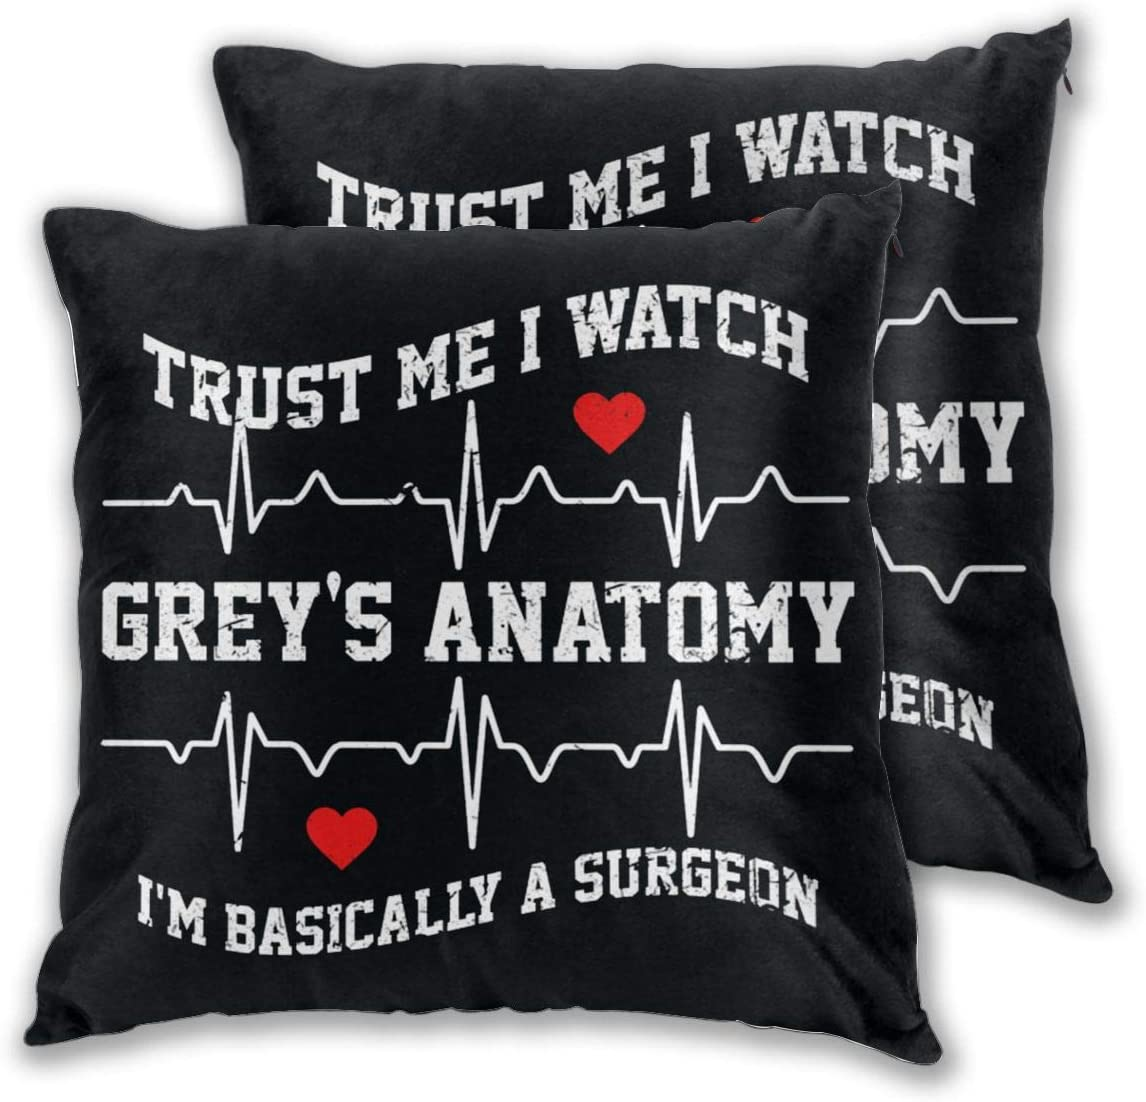 Jdfg96as Trust Me I Watch Greys Anatomy Throw Pillow Covers Set of 2 Cushion Case for Sofa Bedroom Car 18